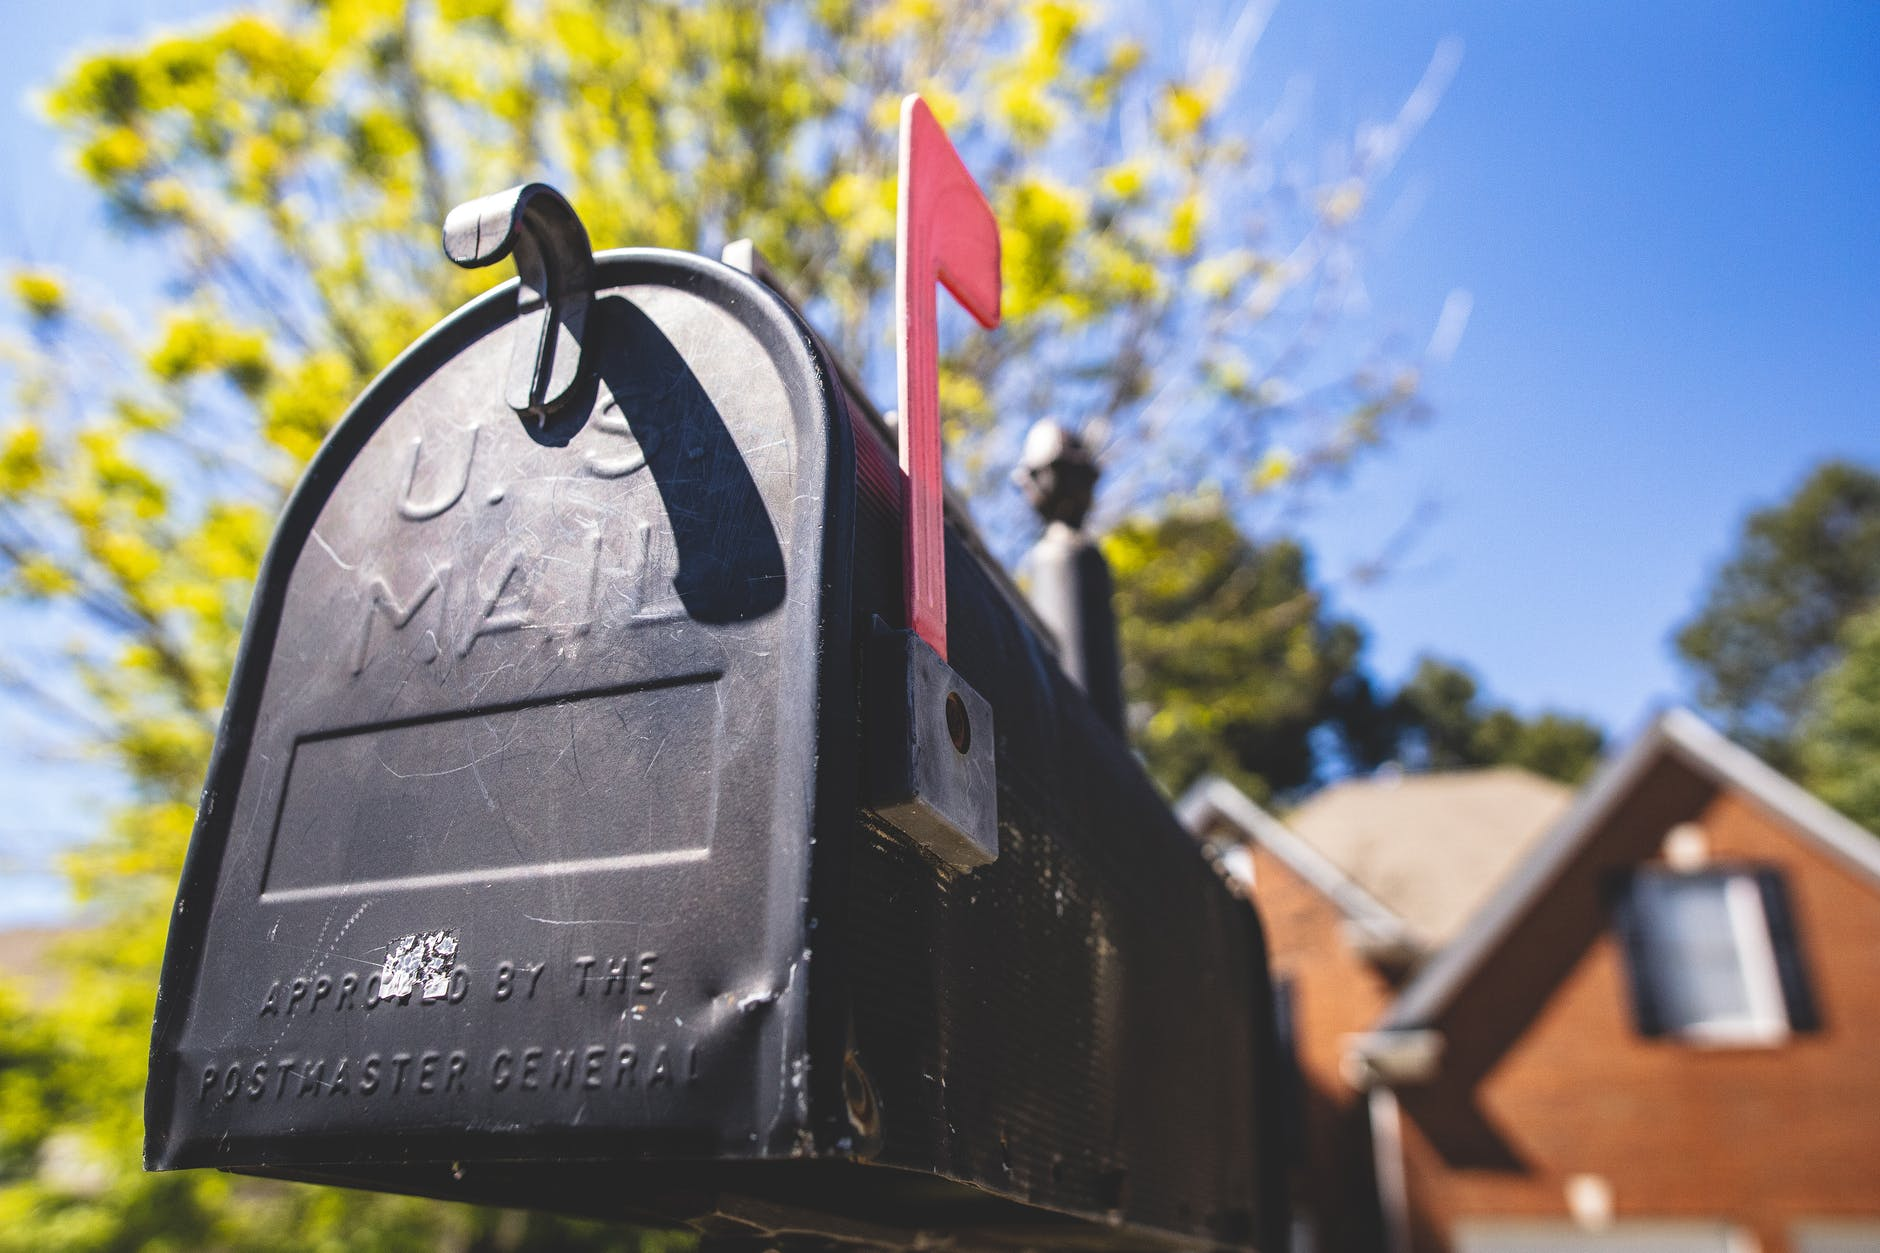 After a few months, the letter stopped coming. | Source: Pexels